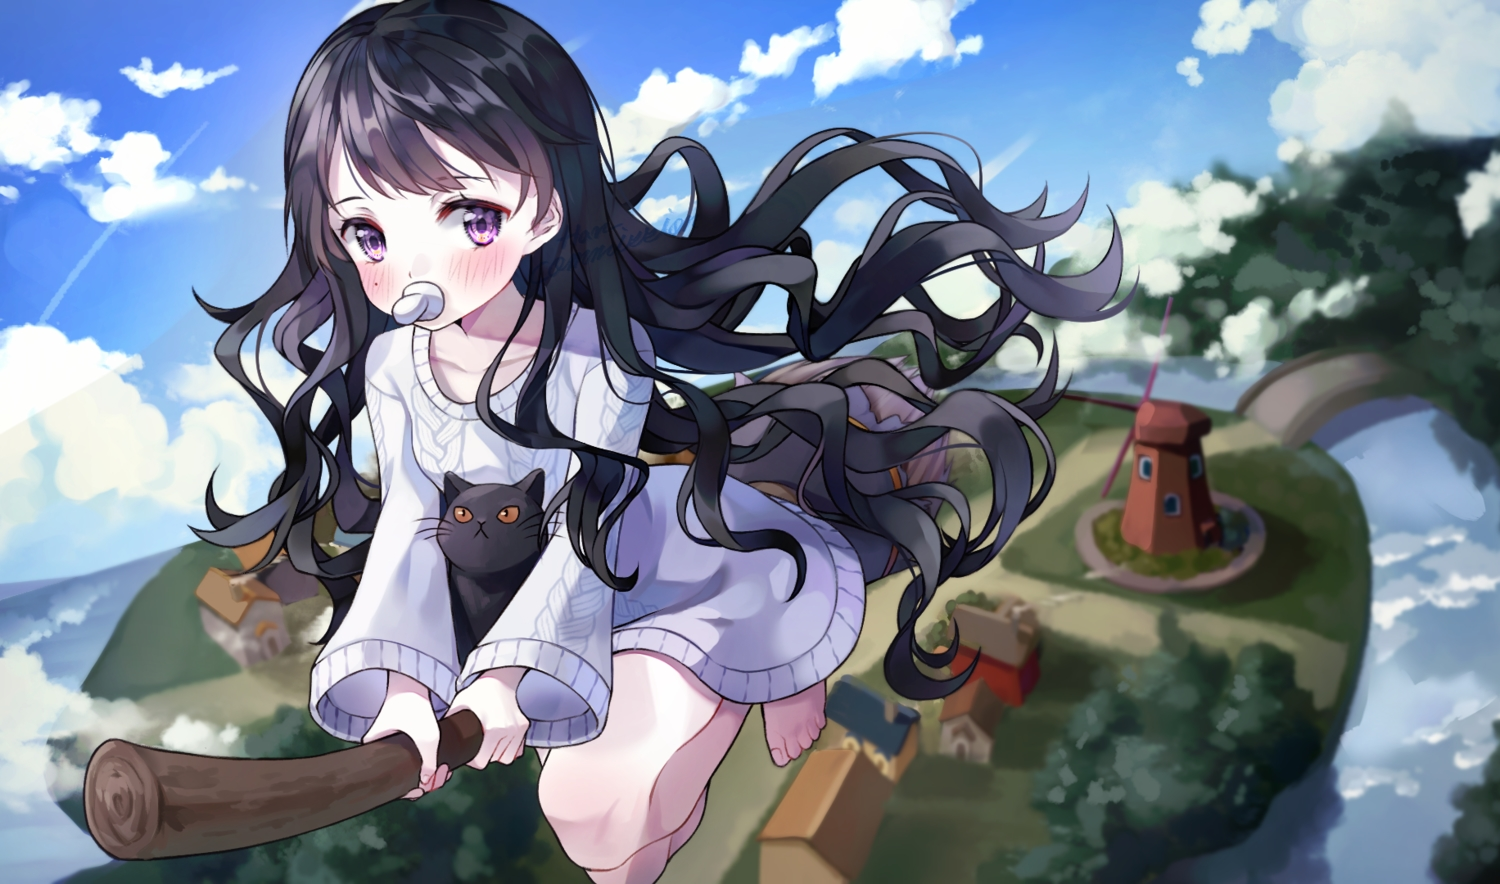 animal black_hair blush building cat clouds han_seol landscape loli long_hair original purple_eyes scenic sky water windmill witch